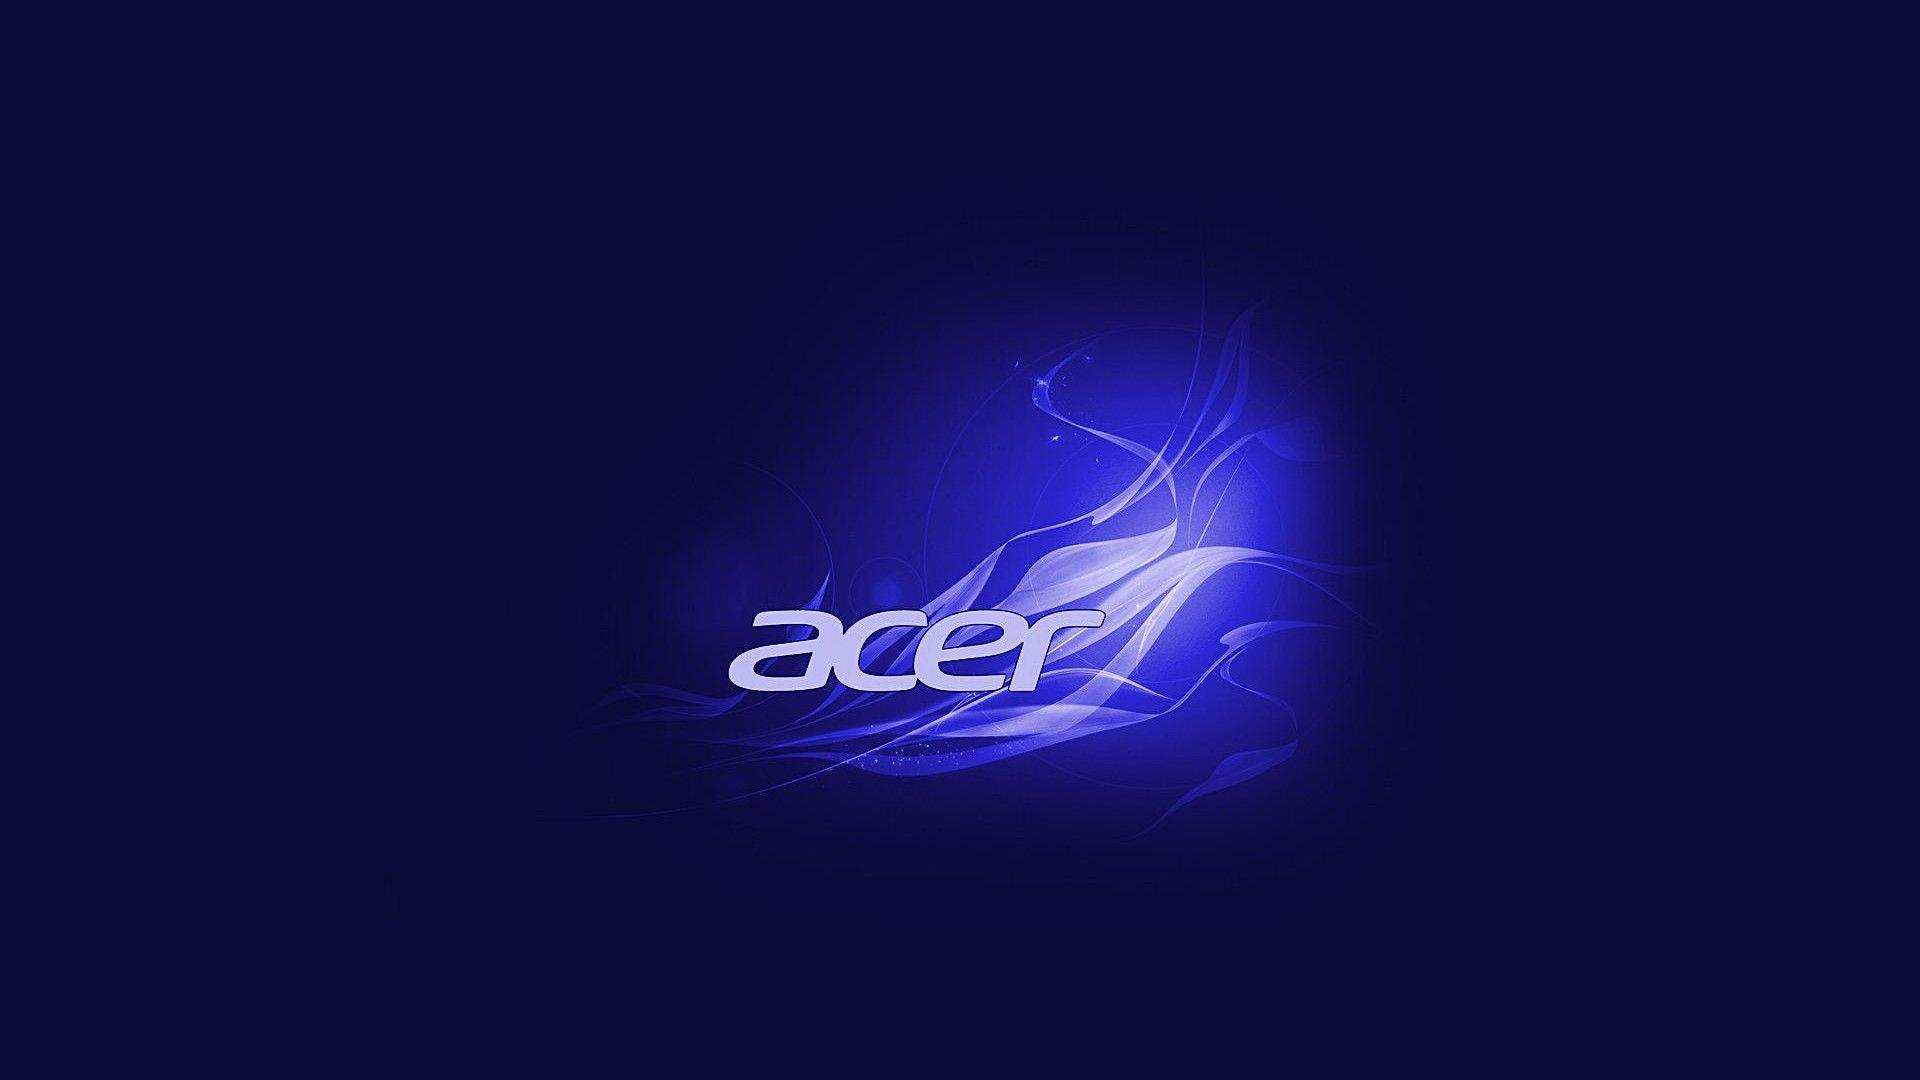 Acer Wallpapers, 37 Widescreen HD Wallpapers of Acer